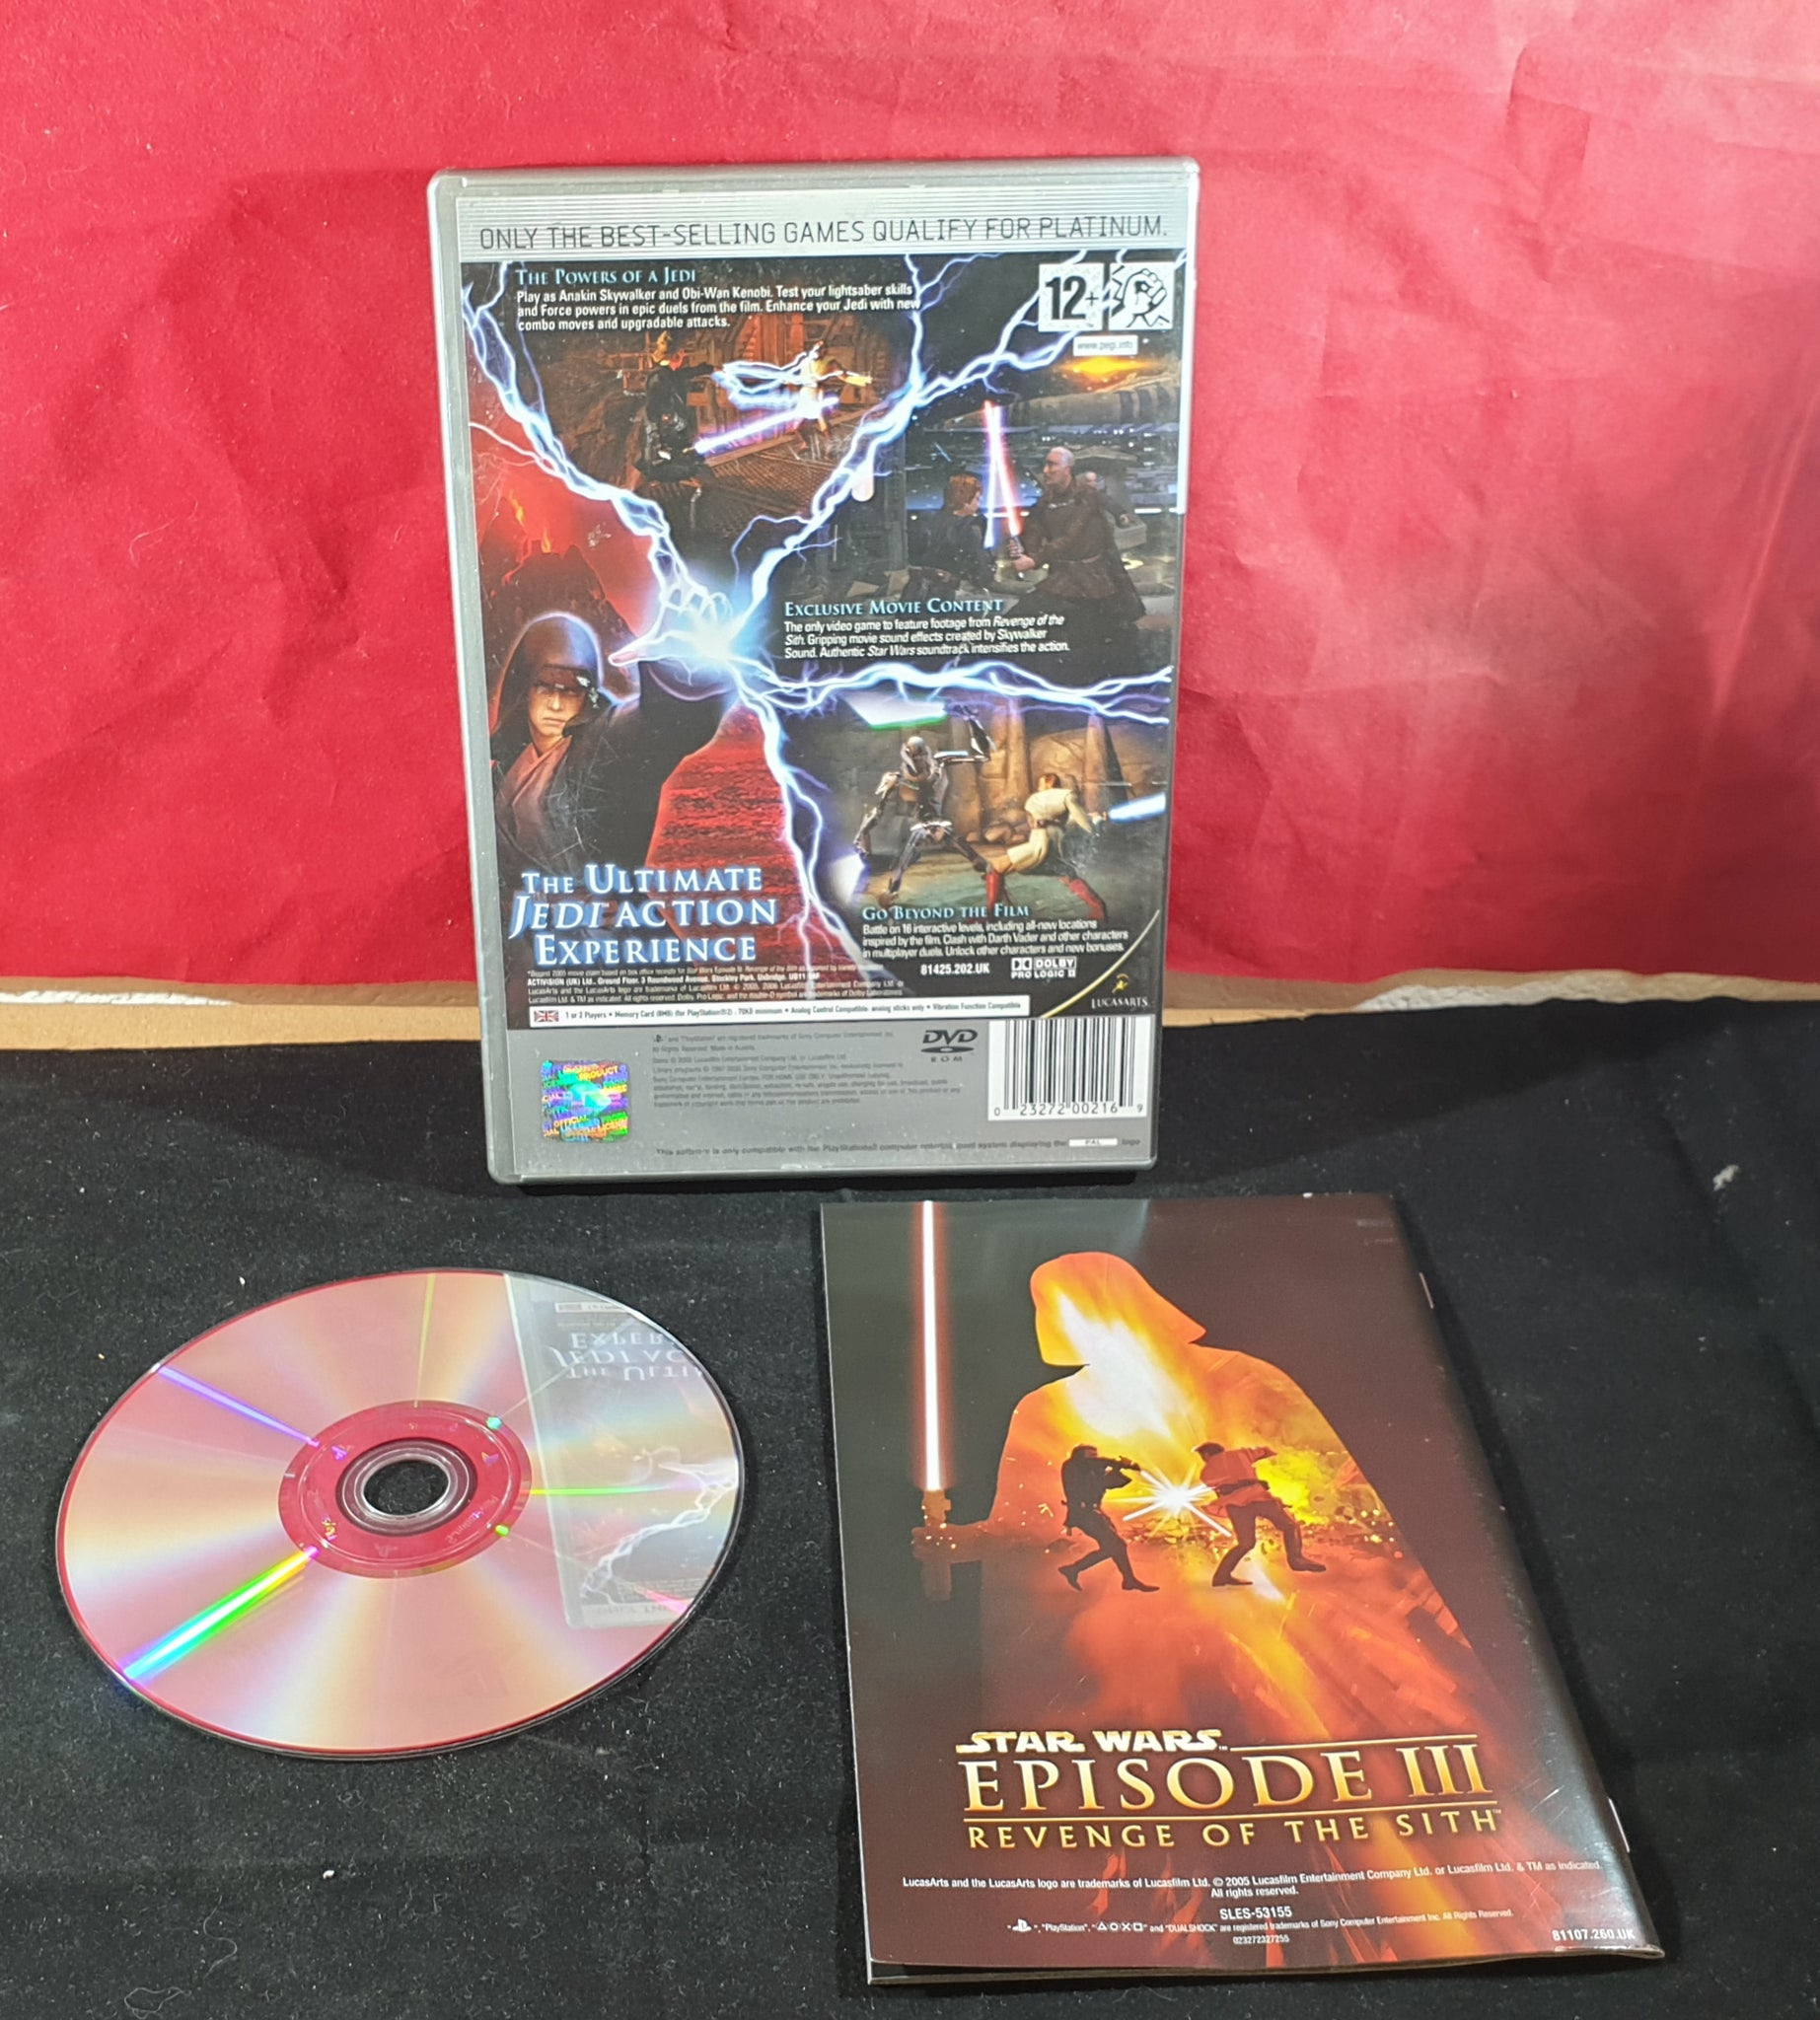 Star Wars Episode III Revenge of the Sith Platinum Sony